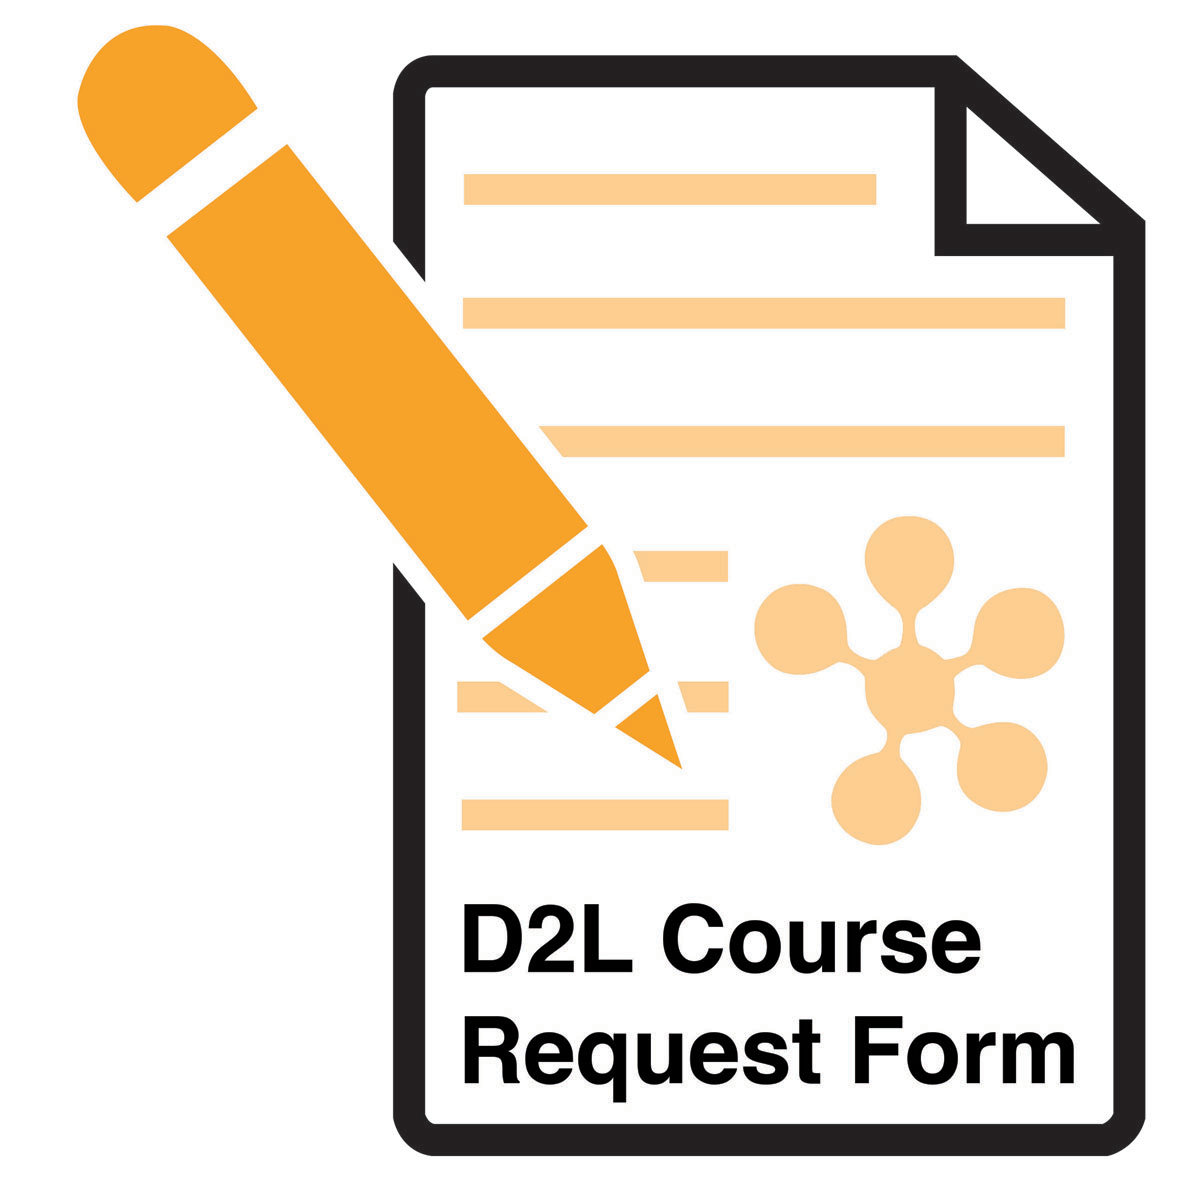 D2L Course Activation Request Form